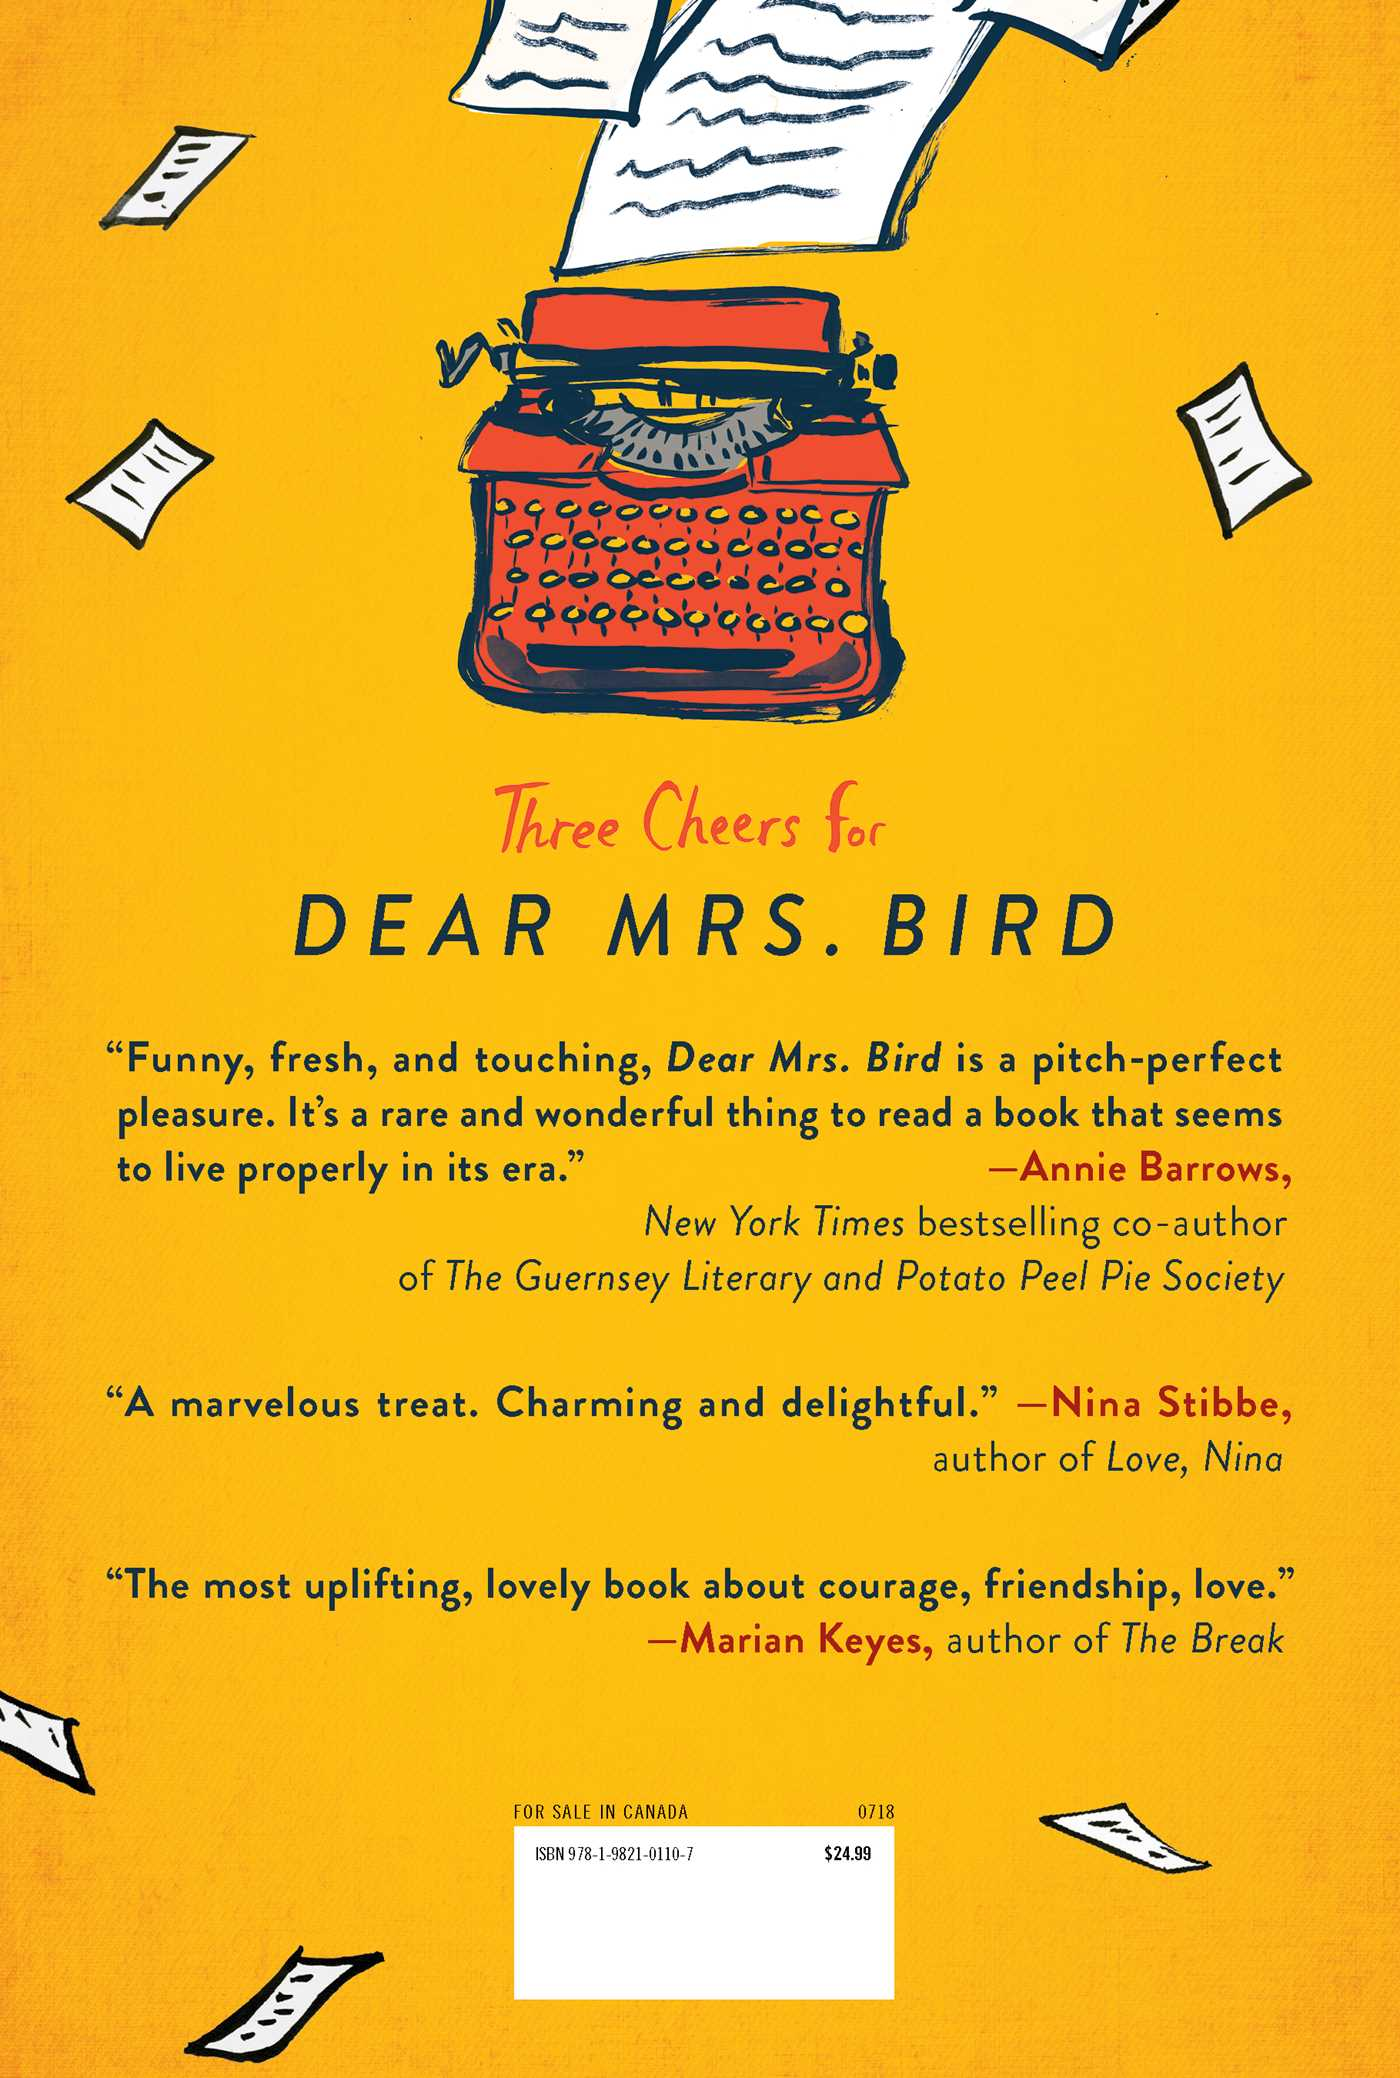 Dear mrs bird 9781982101107 hr back